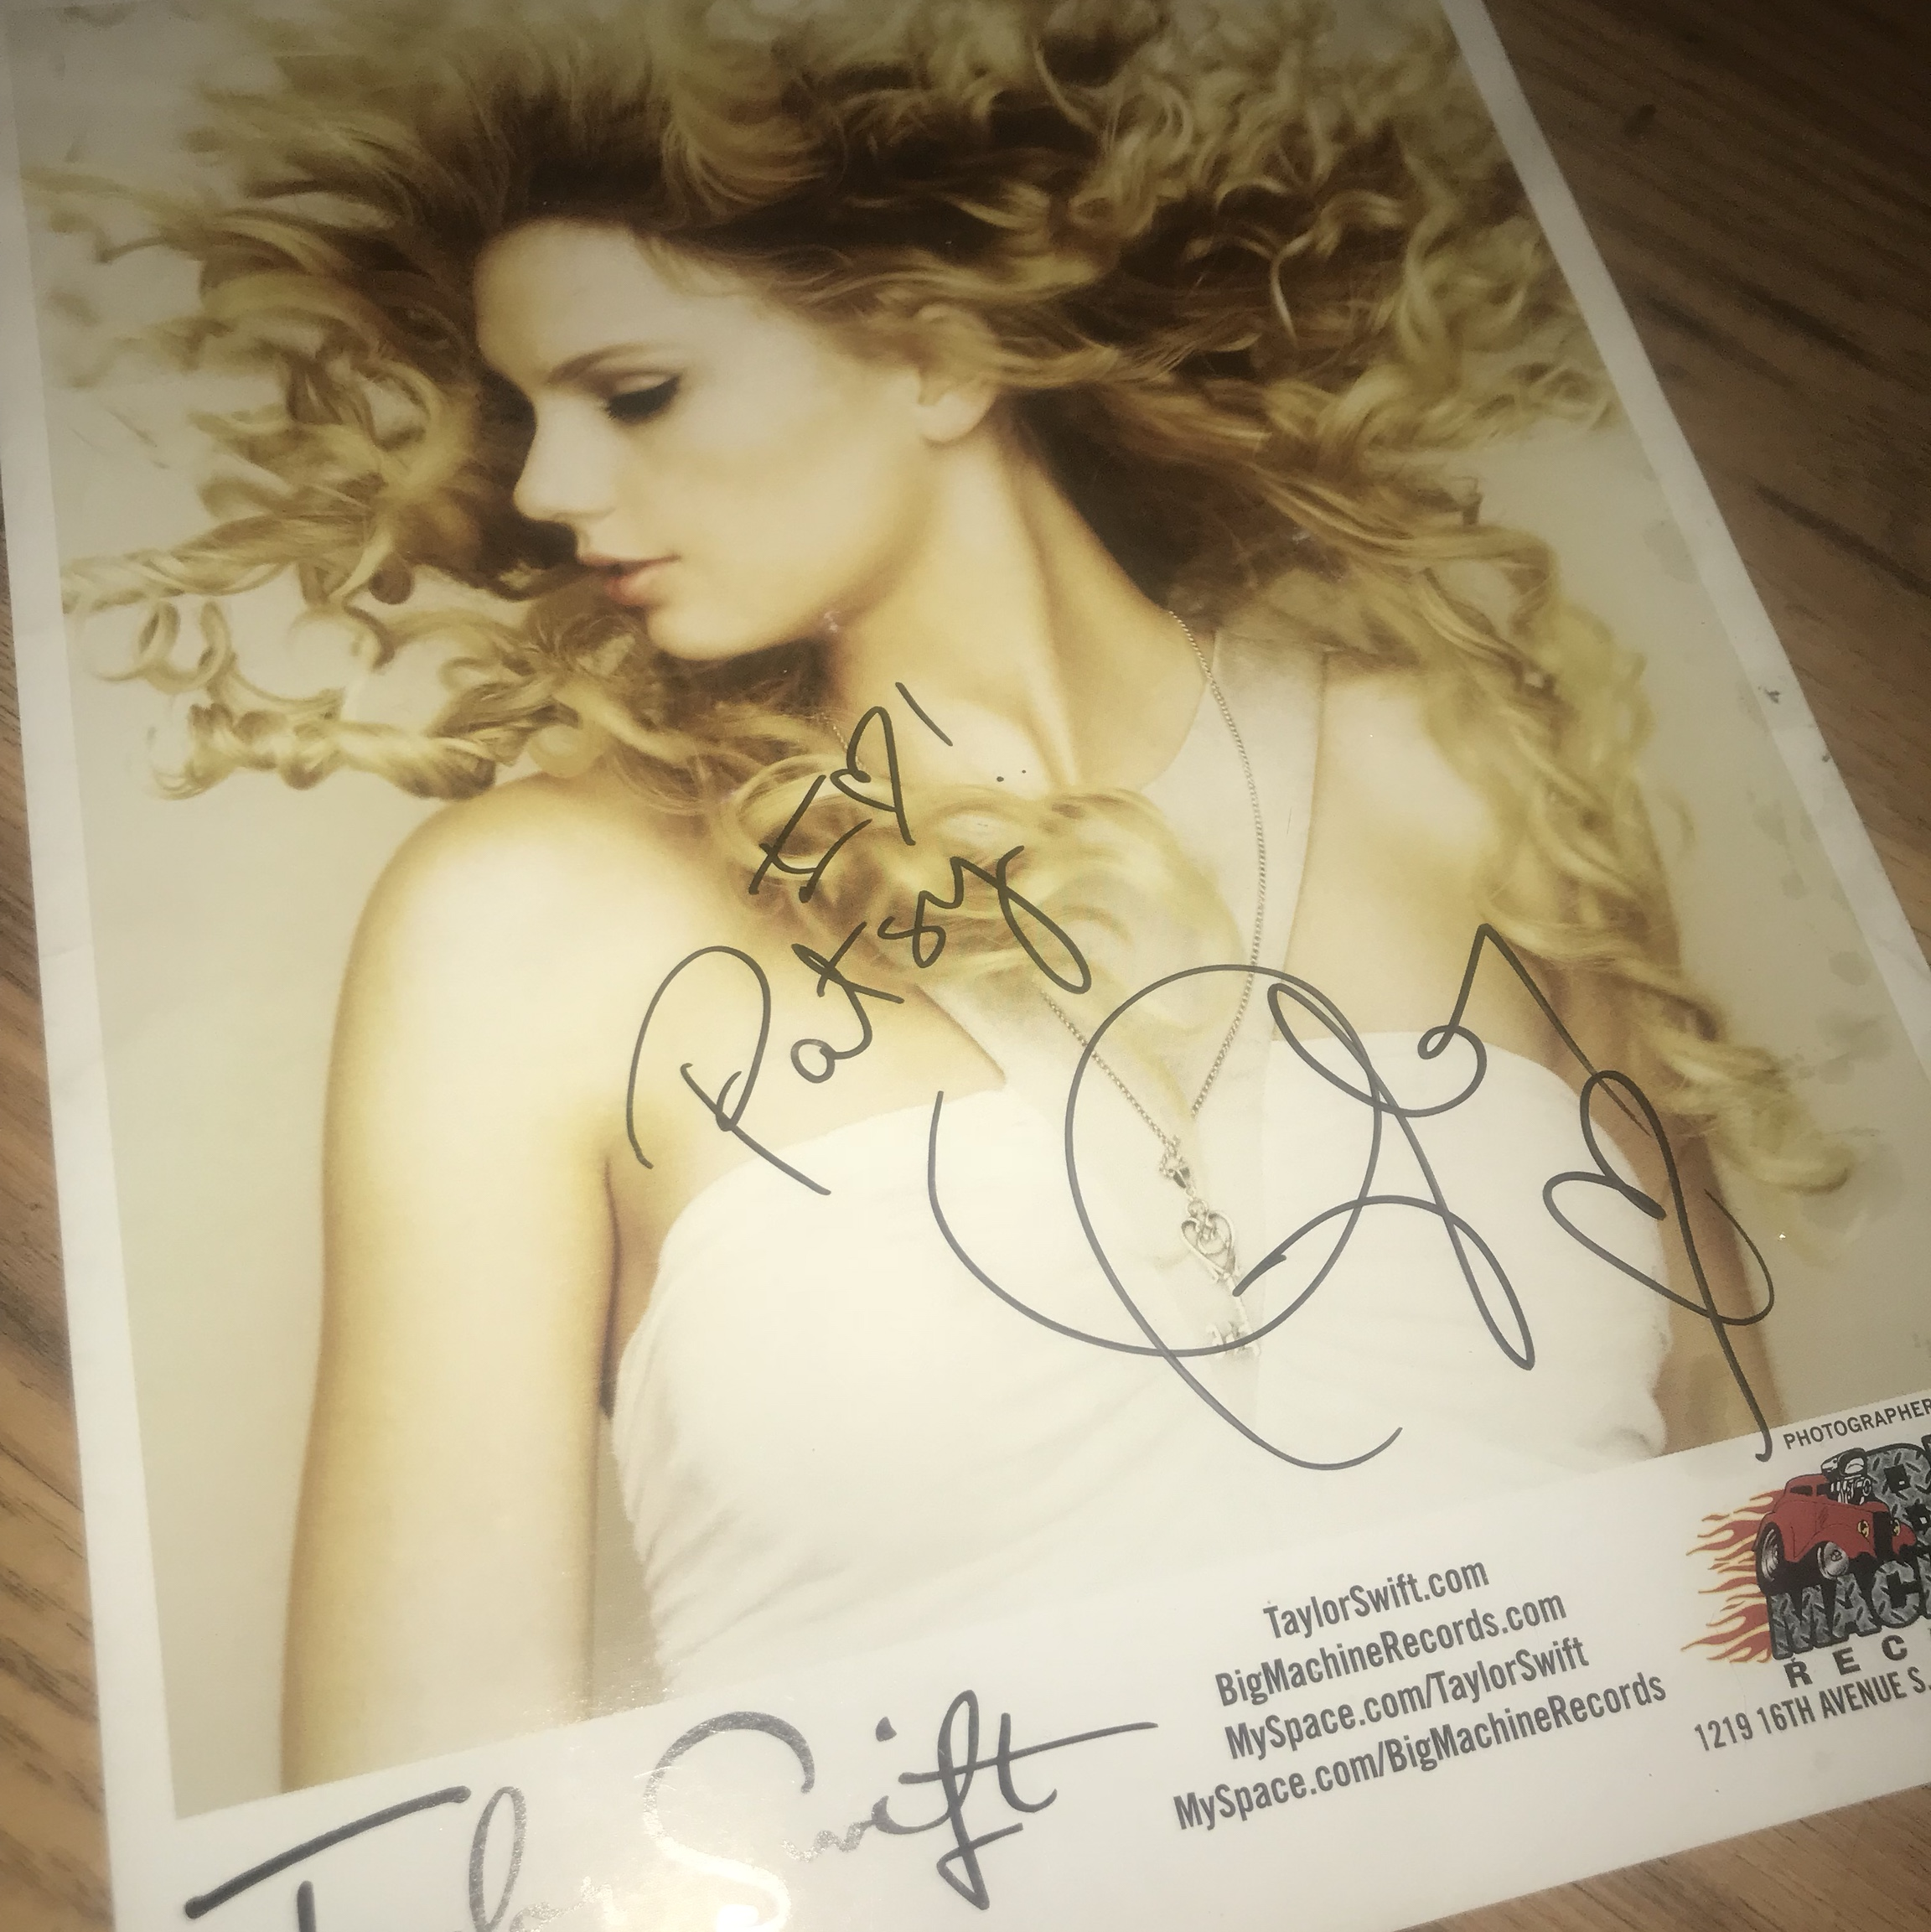 Taylor Swift Signed Photo From Fearless Era Official Depop